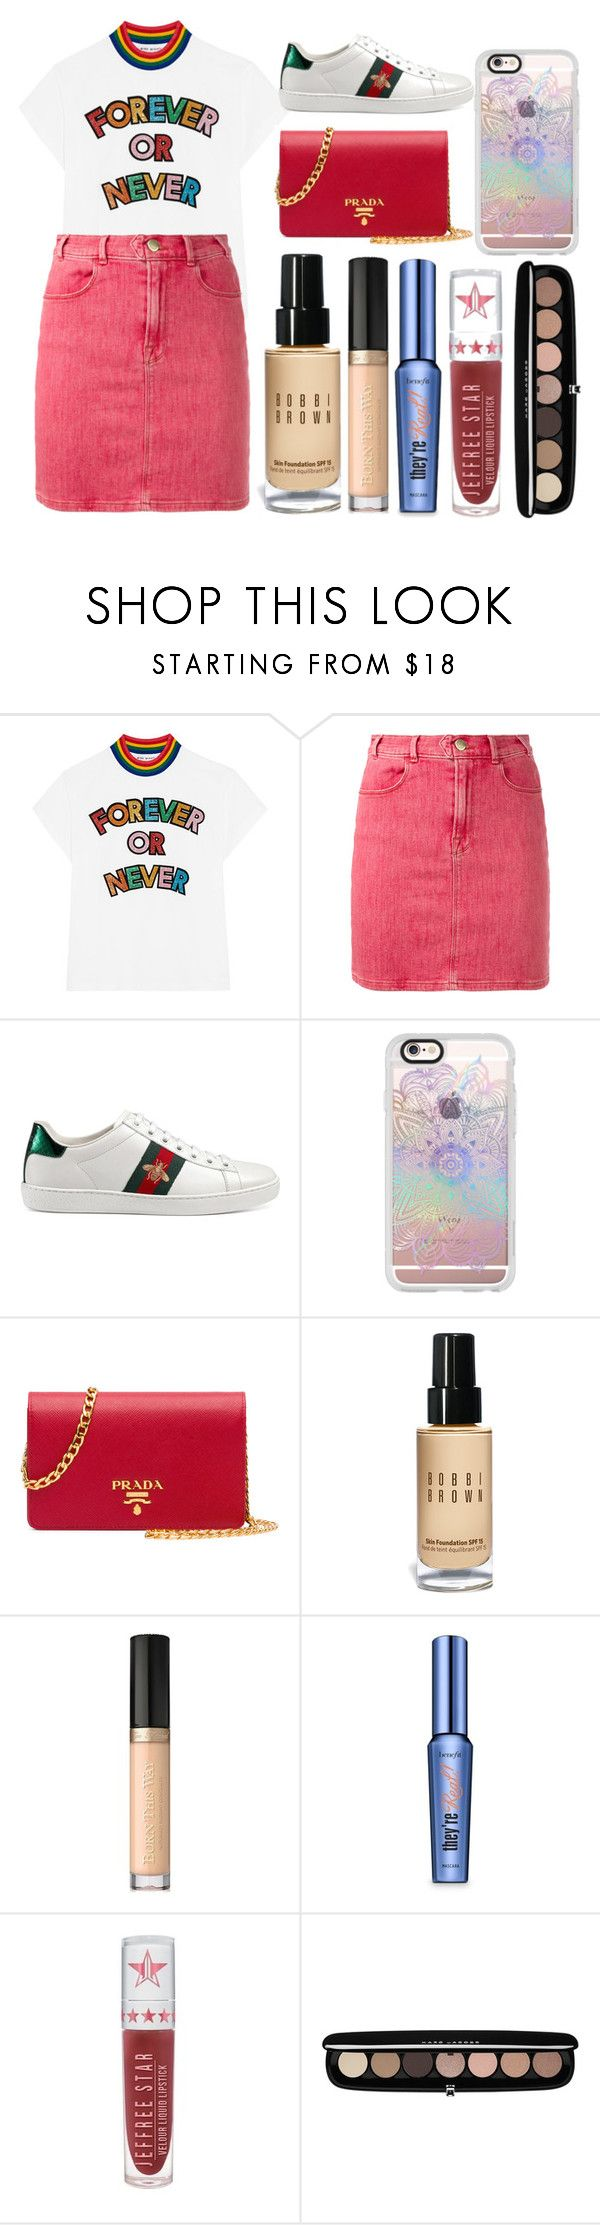 """forever or never"" by millieisabellanicol ❤ liked on Polyvore featuring Mira Mikati, Frame, Gucci, Casetify, Prada, Bobbi Brown Cosmetics, Too Faced Cosmetics, Benefit, Jeffree Star and Marc Jacobs"